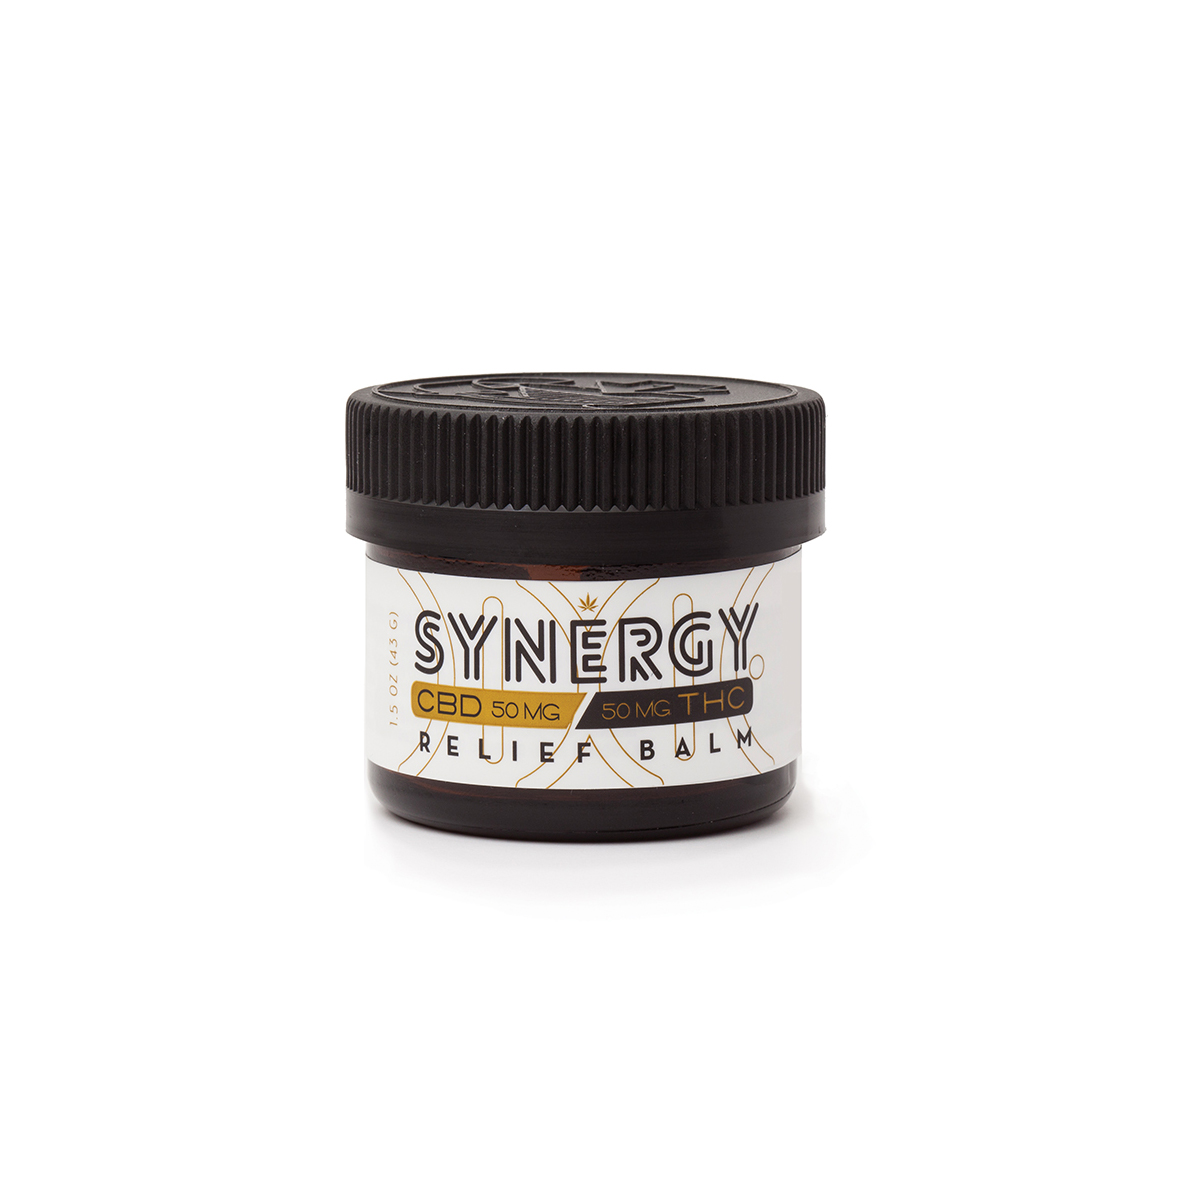 Dixie Synergy Relief Balm